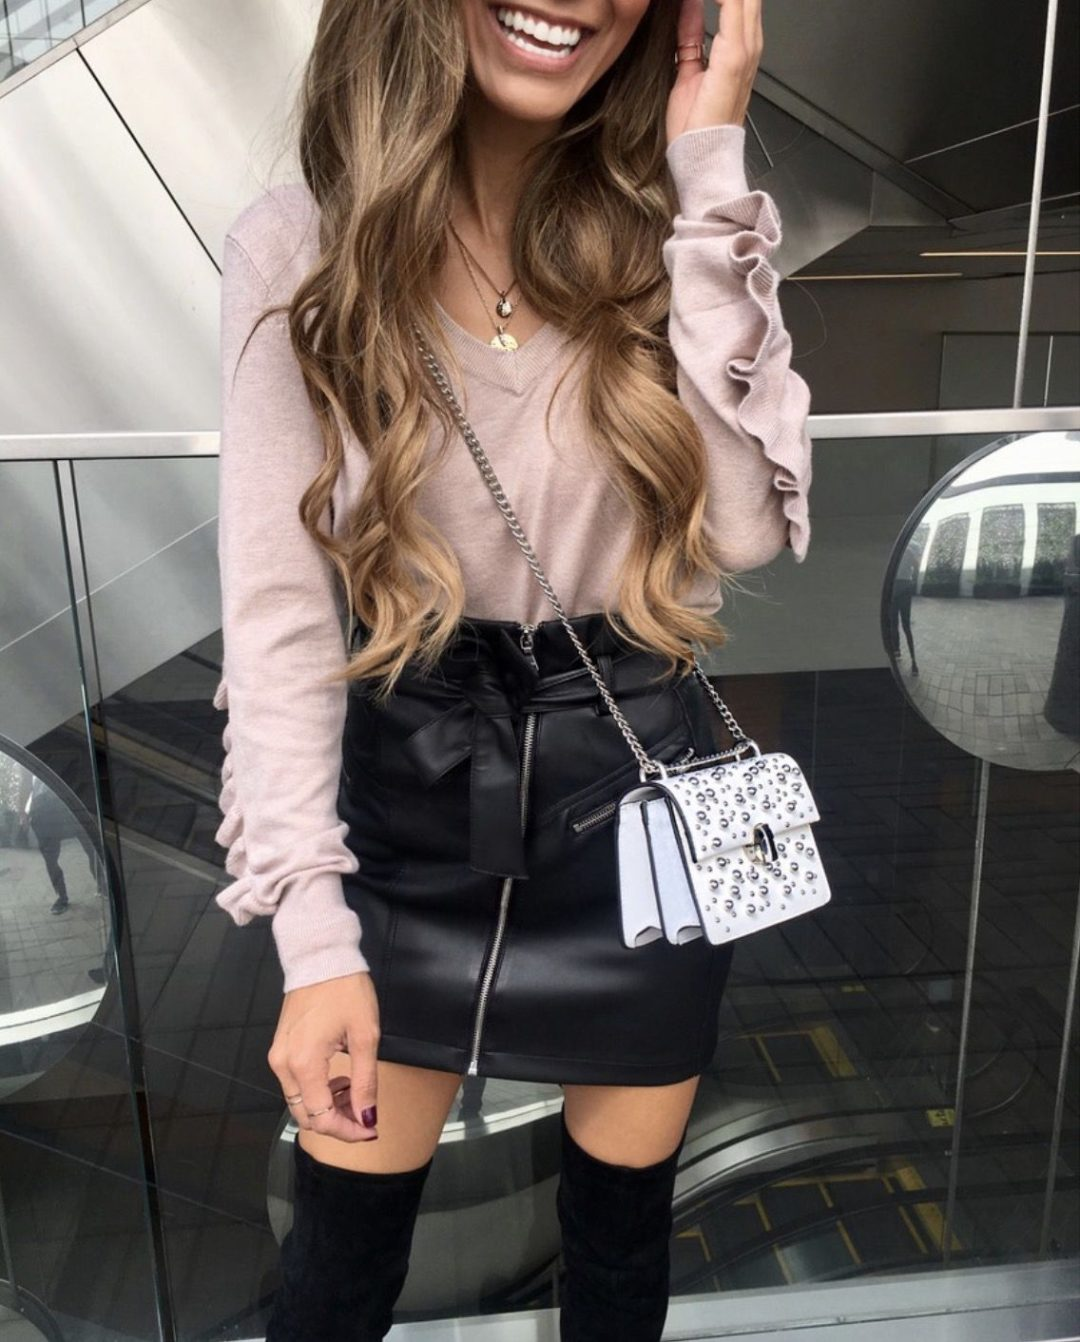 Best fall outfits - black skirt outfits